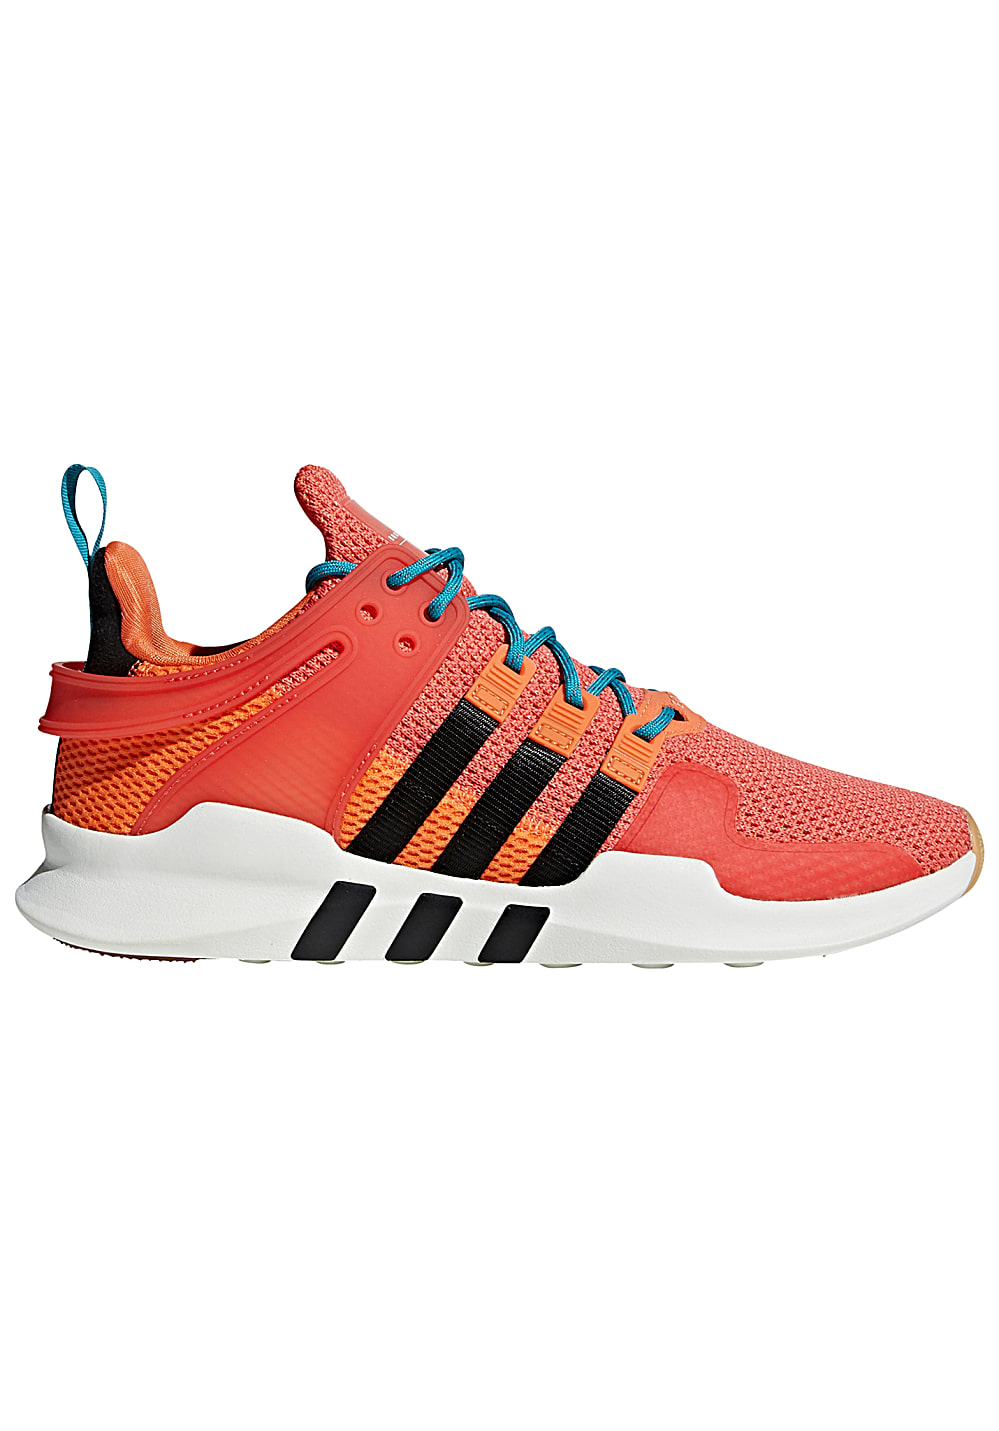 Eqt Orange Adidas Sneaker Adv Originals Für Summer Support Herren odBxCe